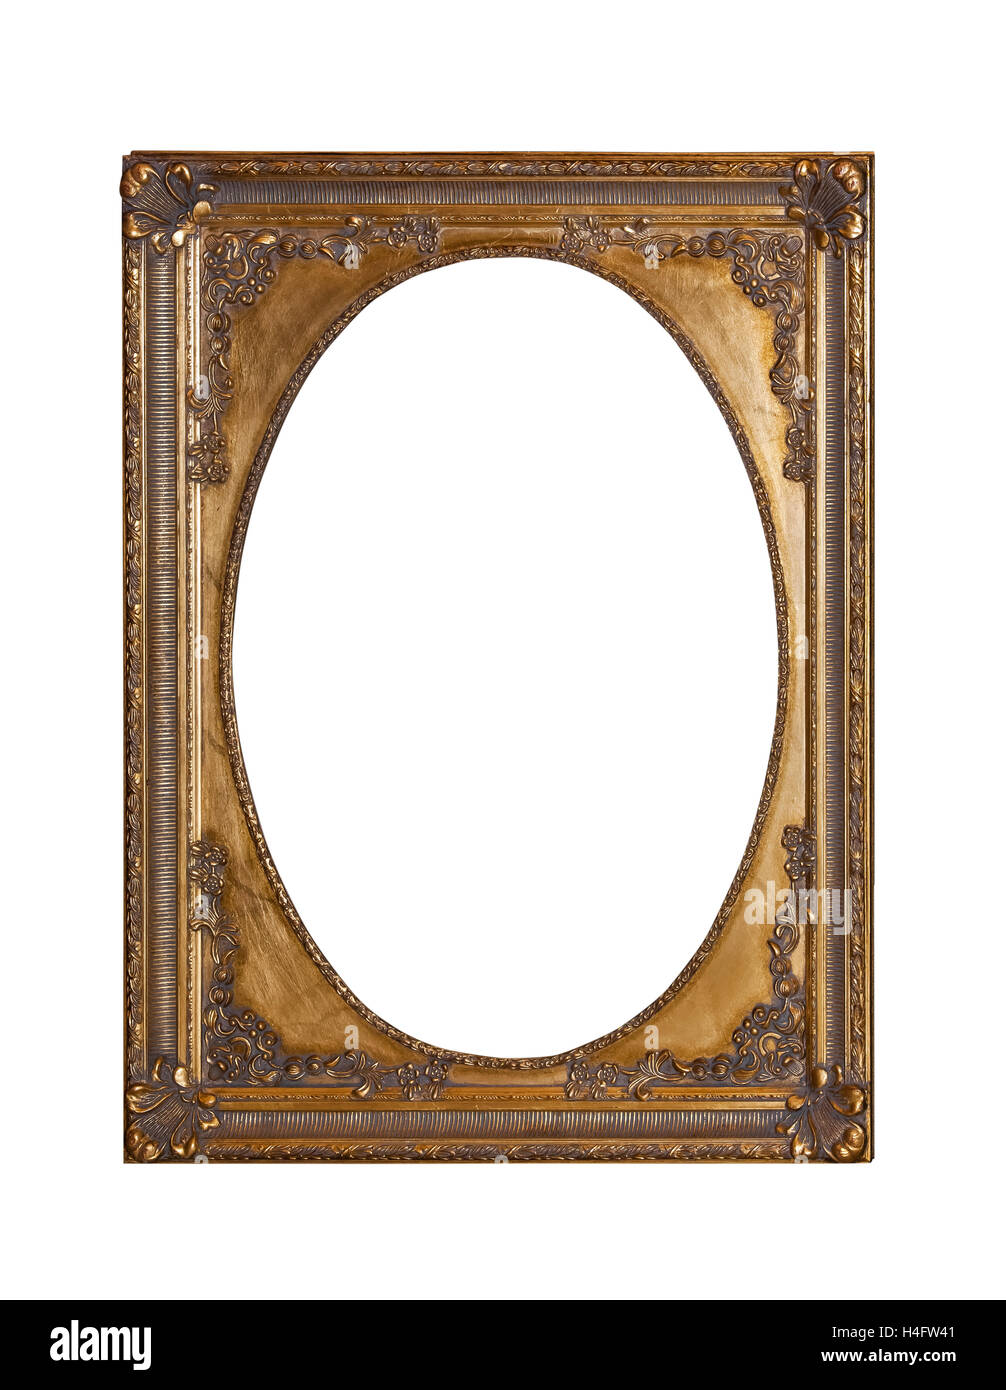 Antique gold frame for painting Stock Photo: 123280193 - Alamy